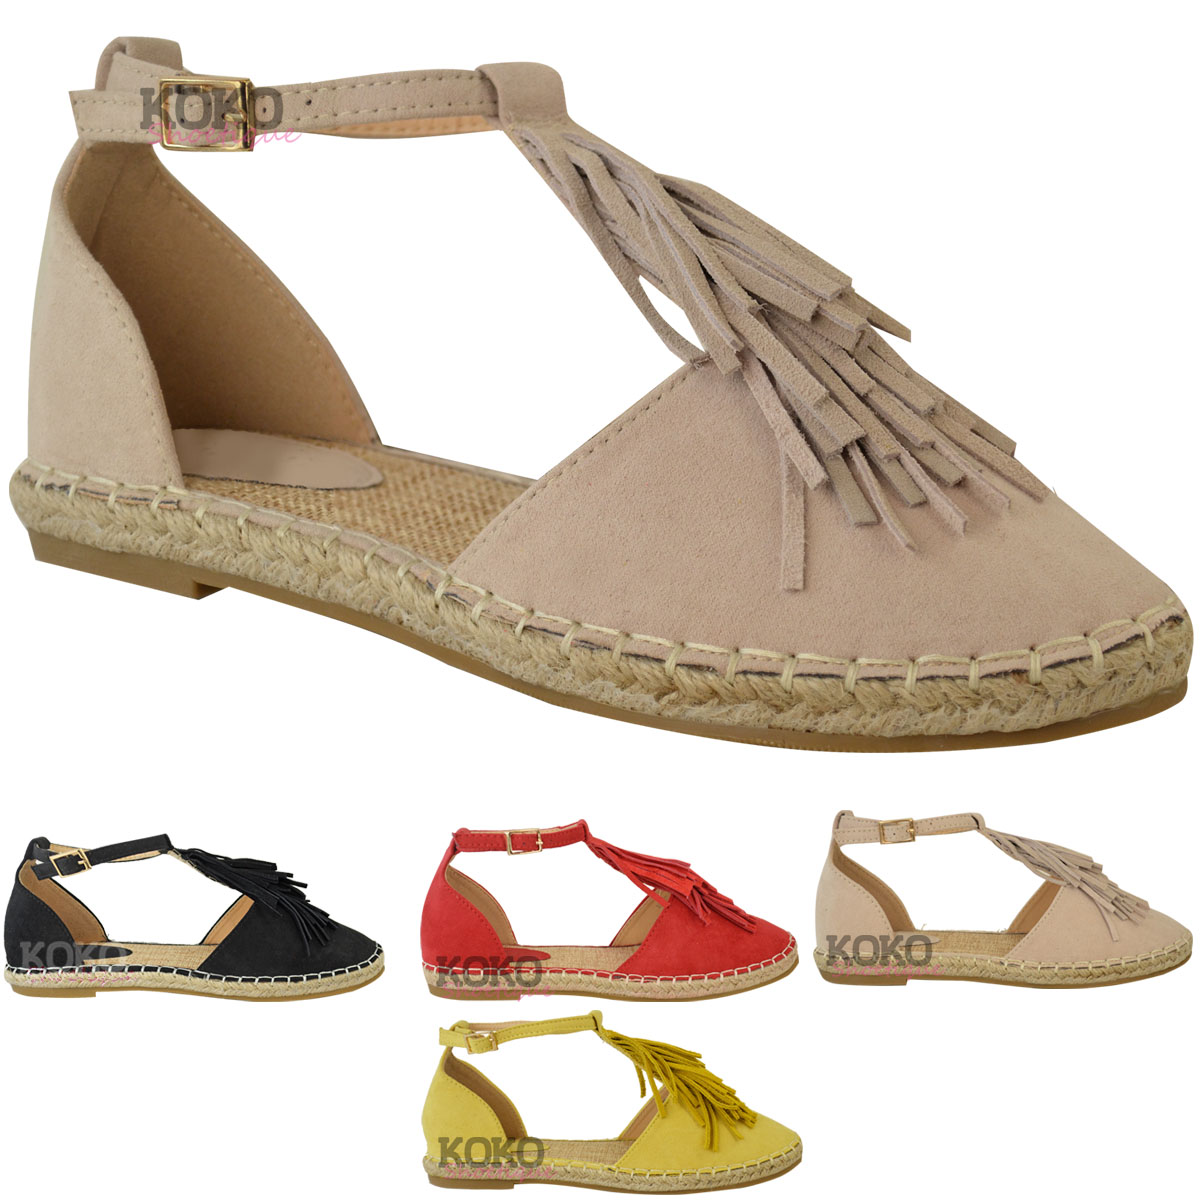 women's summer shoes flat sandals Processing Time: The item will be shipped out within 3 workdays.